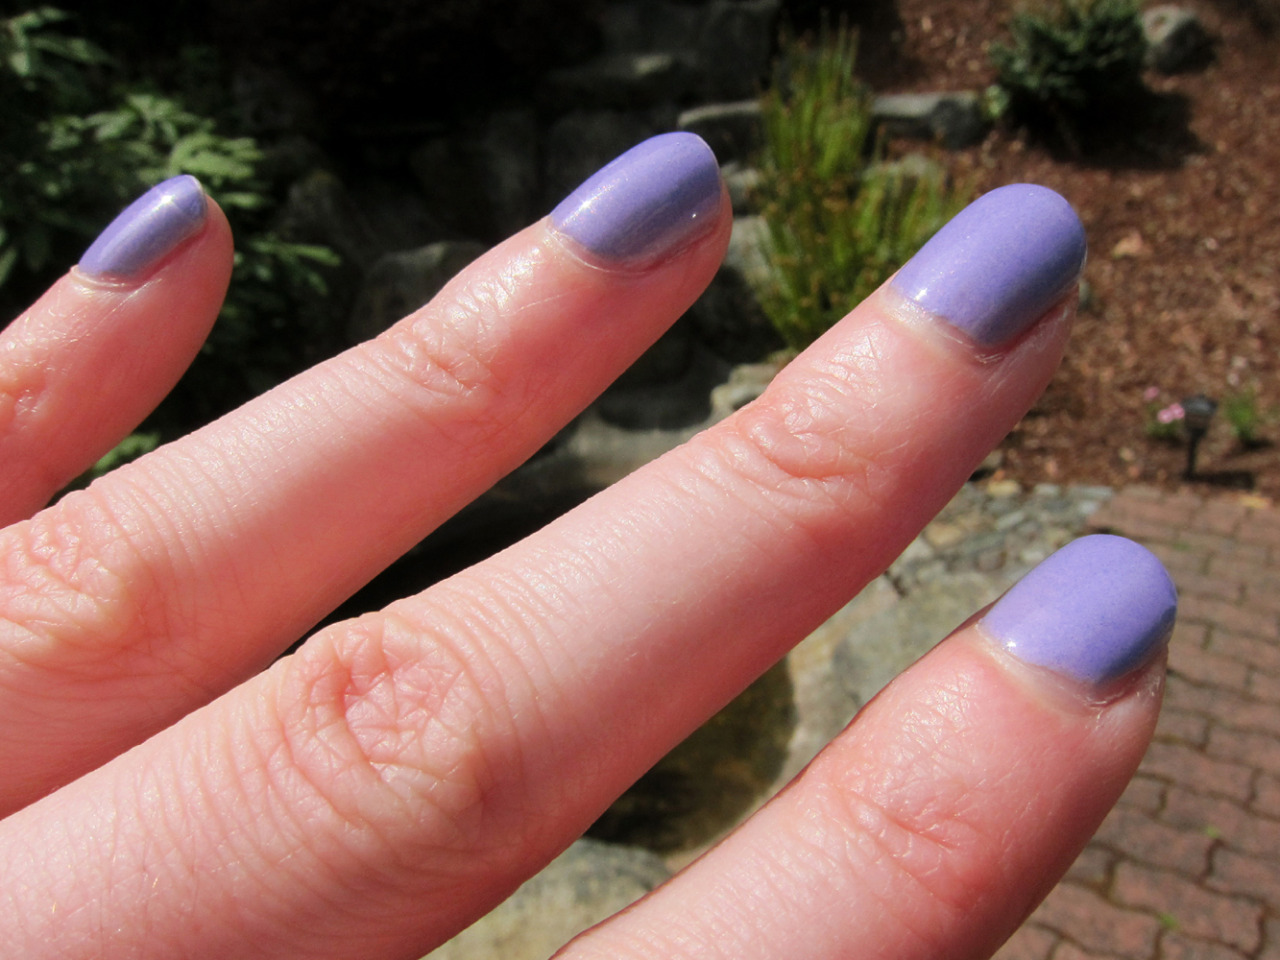 aida's closet: Beauty corner: 5-minute manicure - periwinkle denim